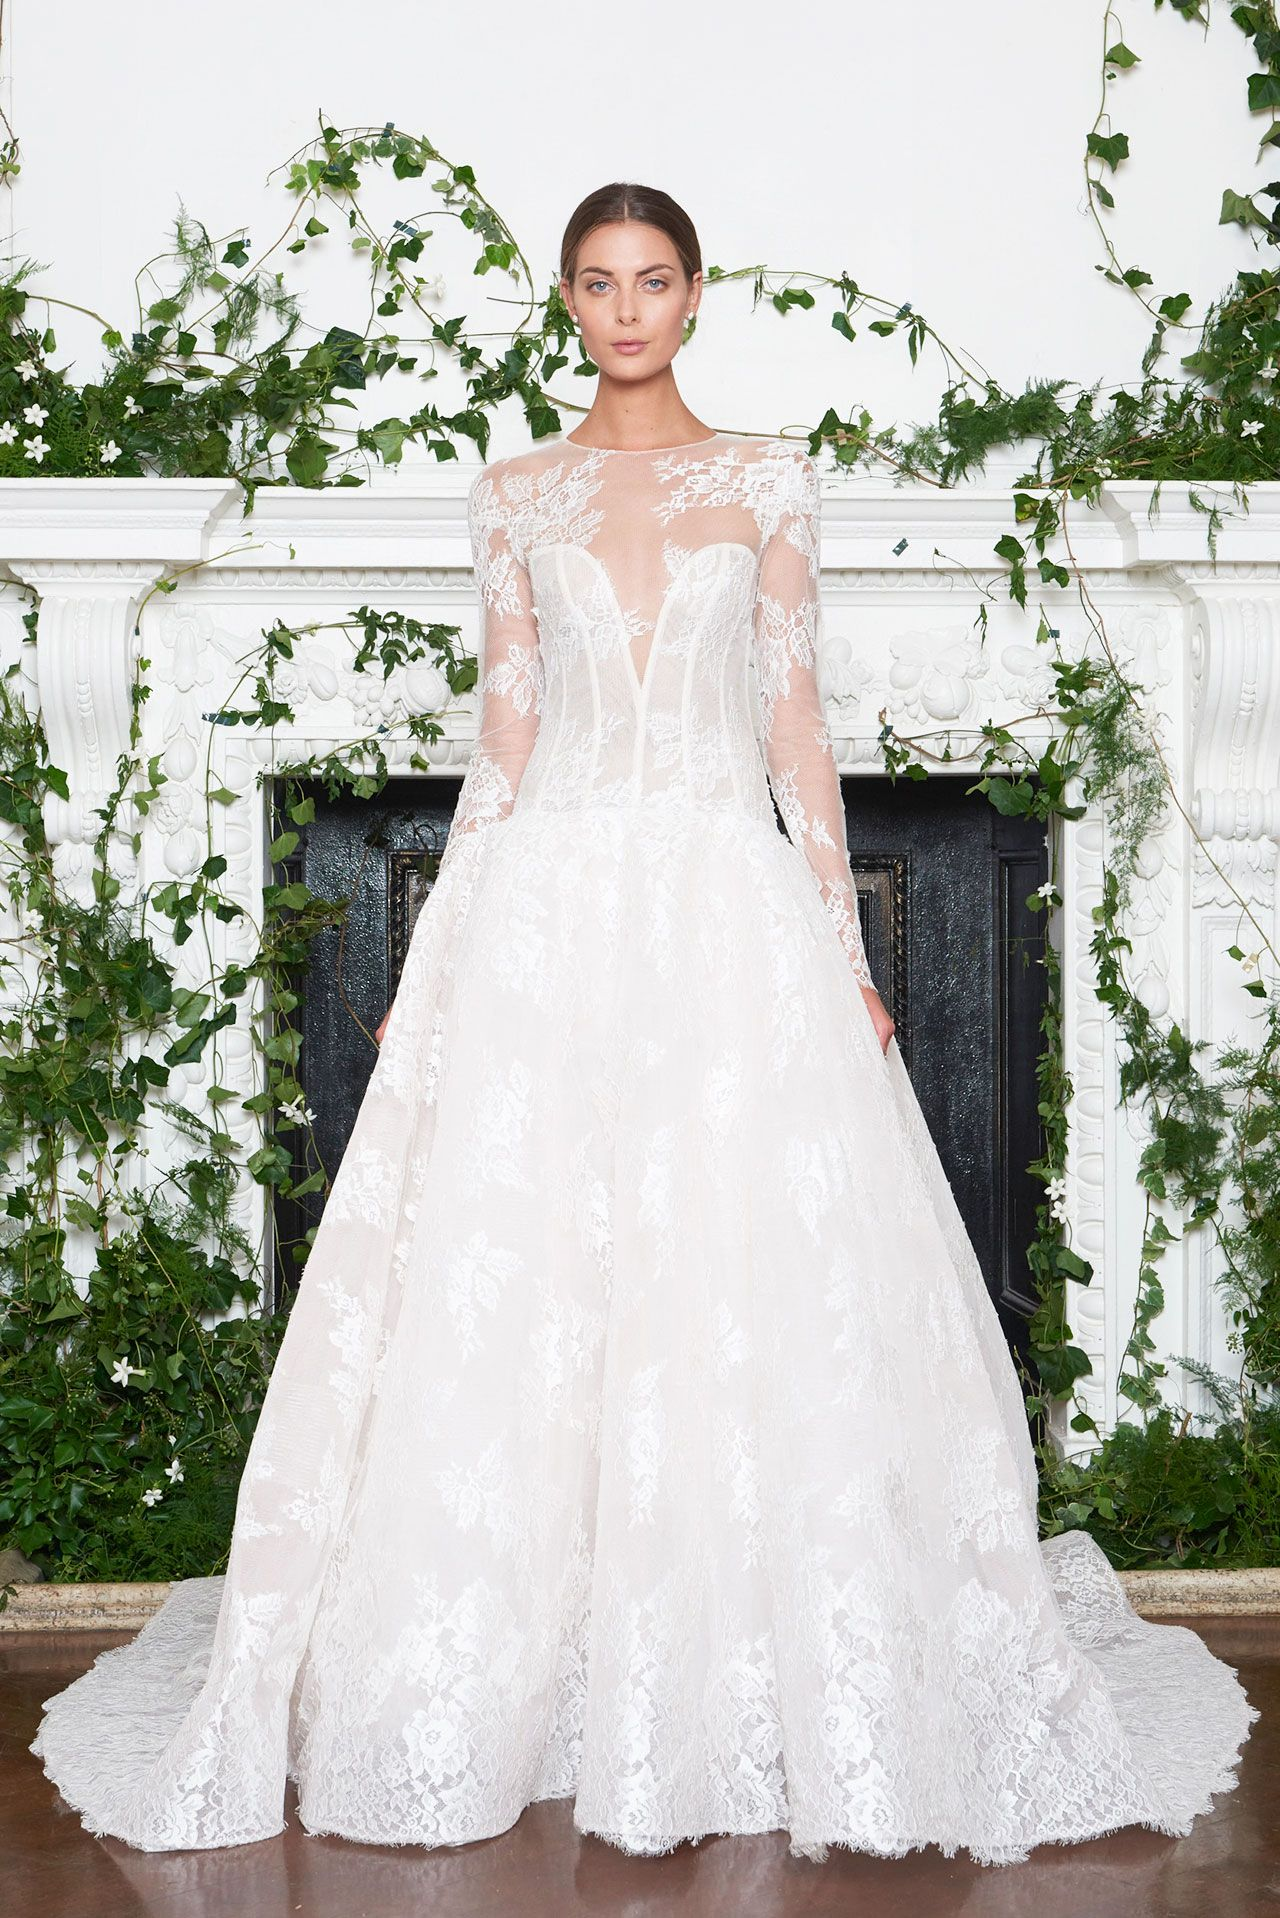 These brand new wedding gowns are insanely breathtaking monique